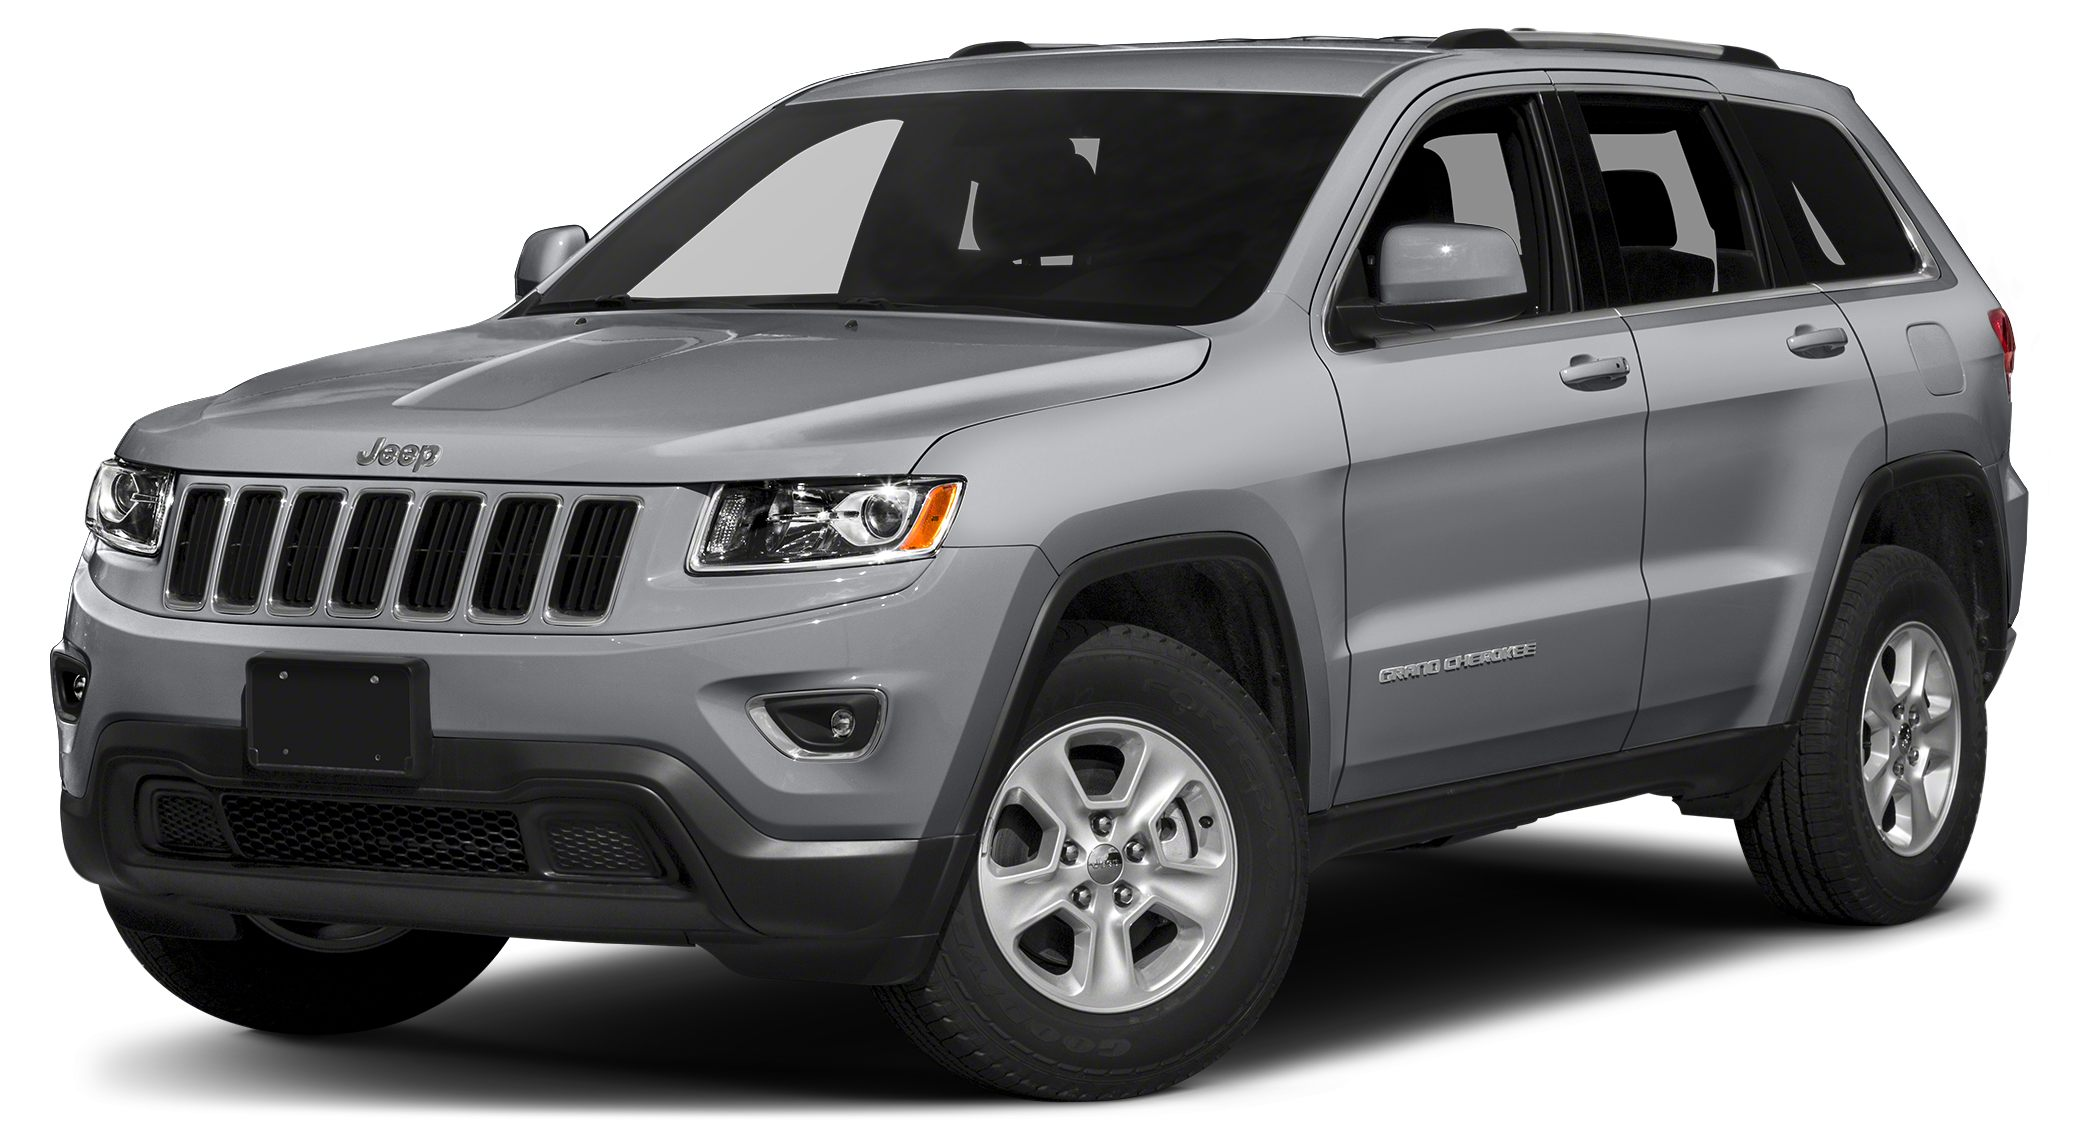 2015 Jeep Grand Cherokee Laredo This 2015 Jeep Grand Cherokee 4dr Laredo features a 36L V6 Cylind